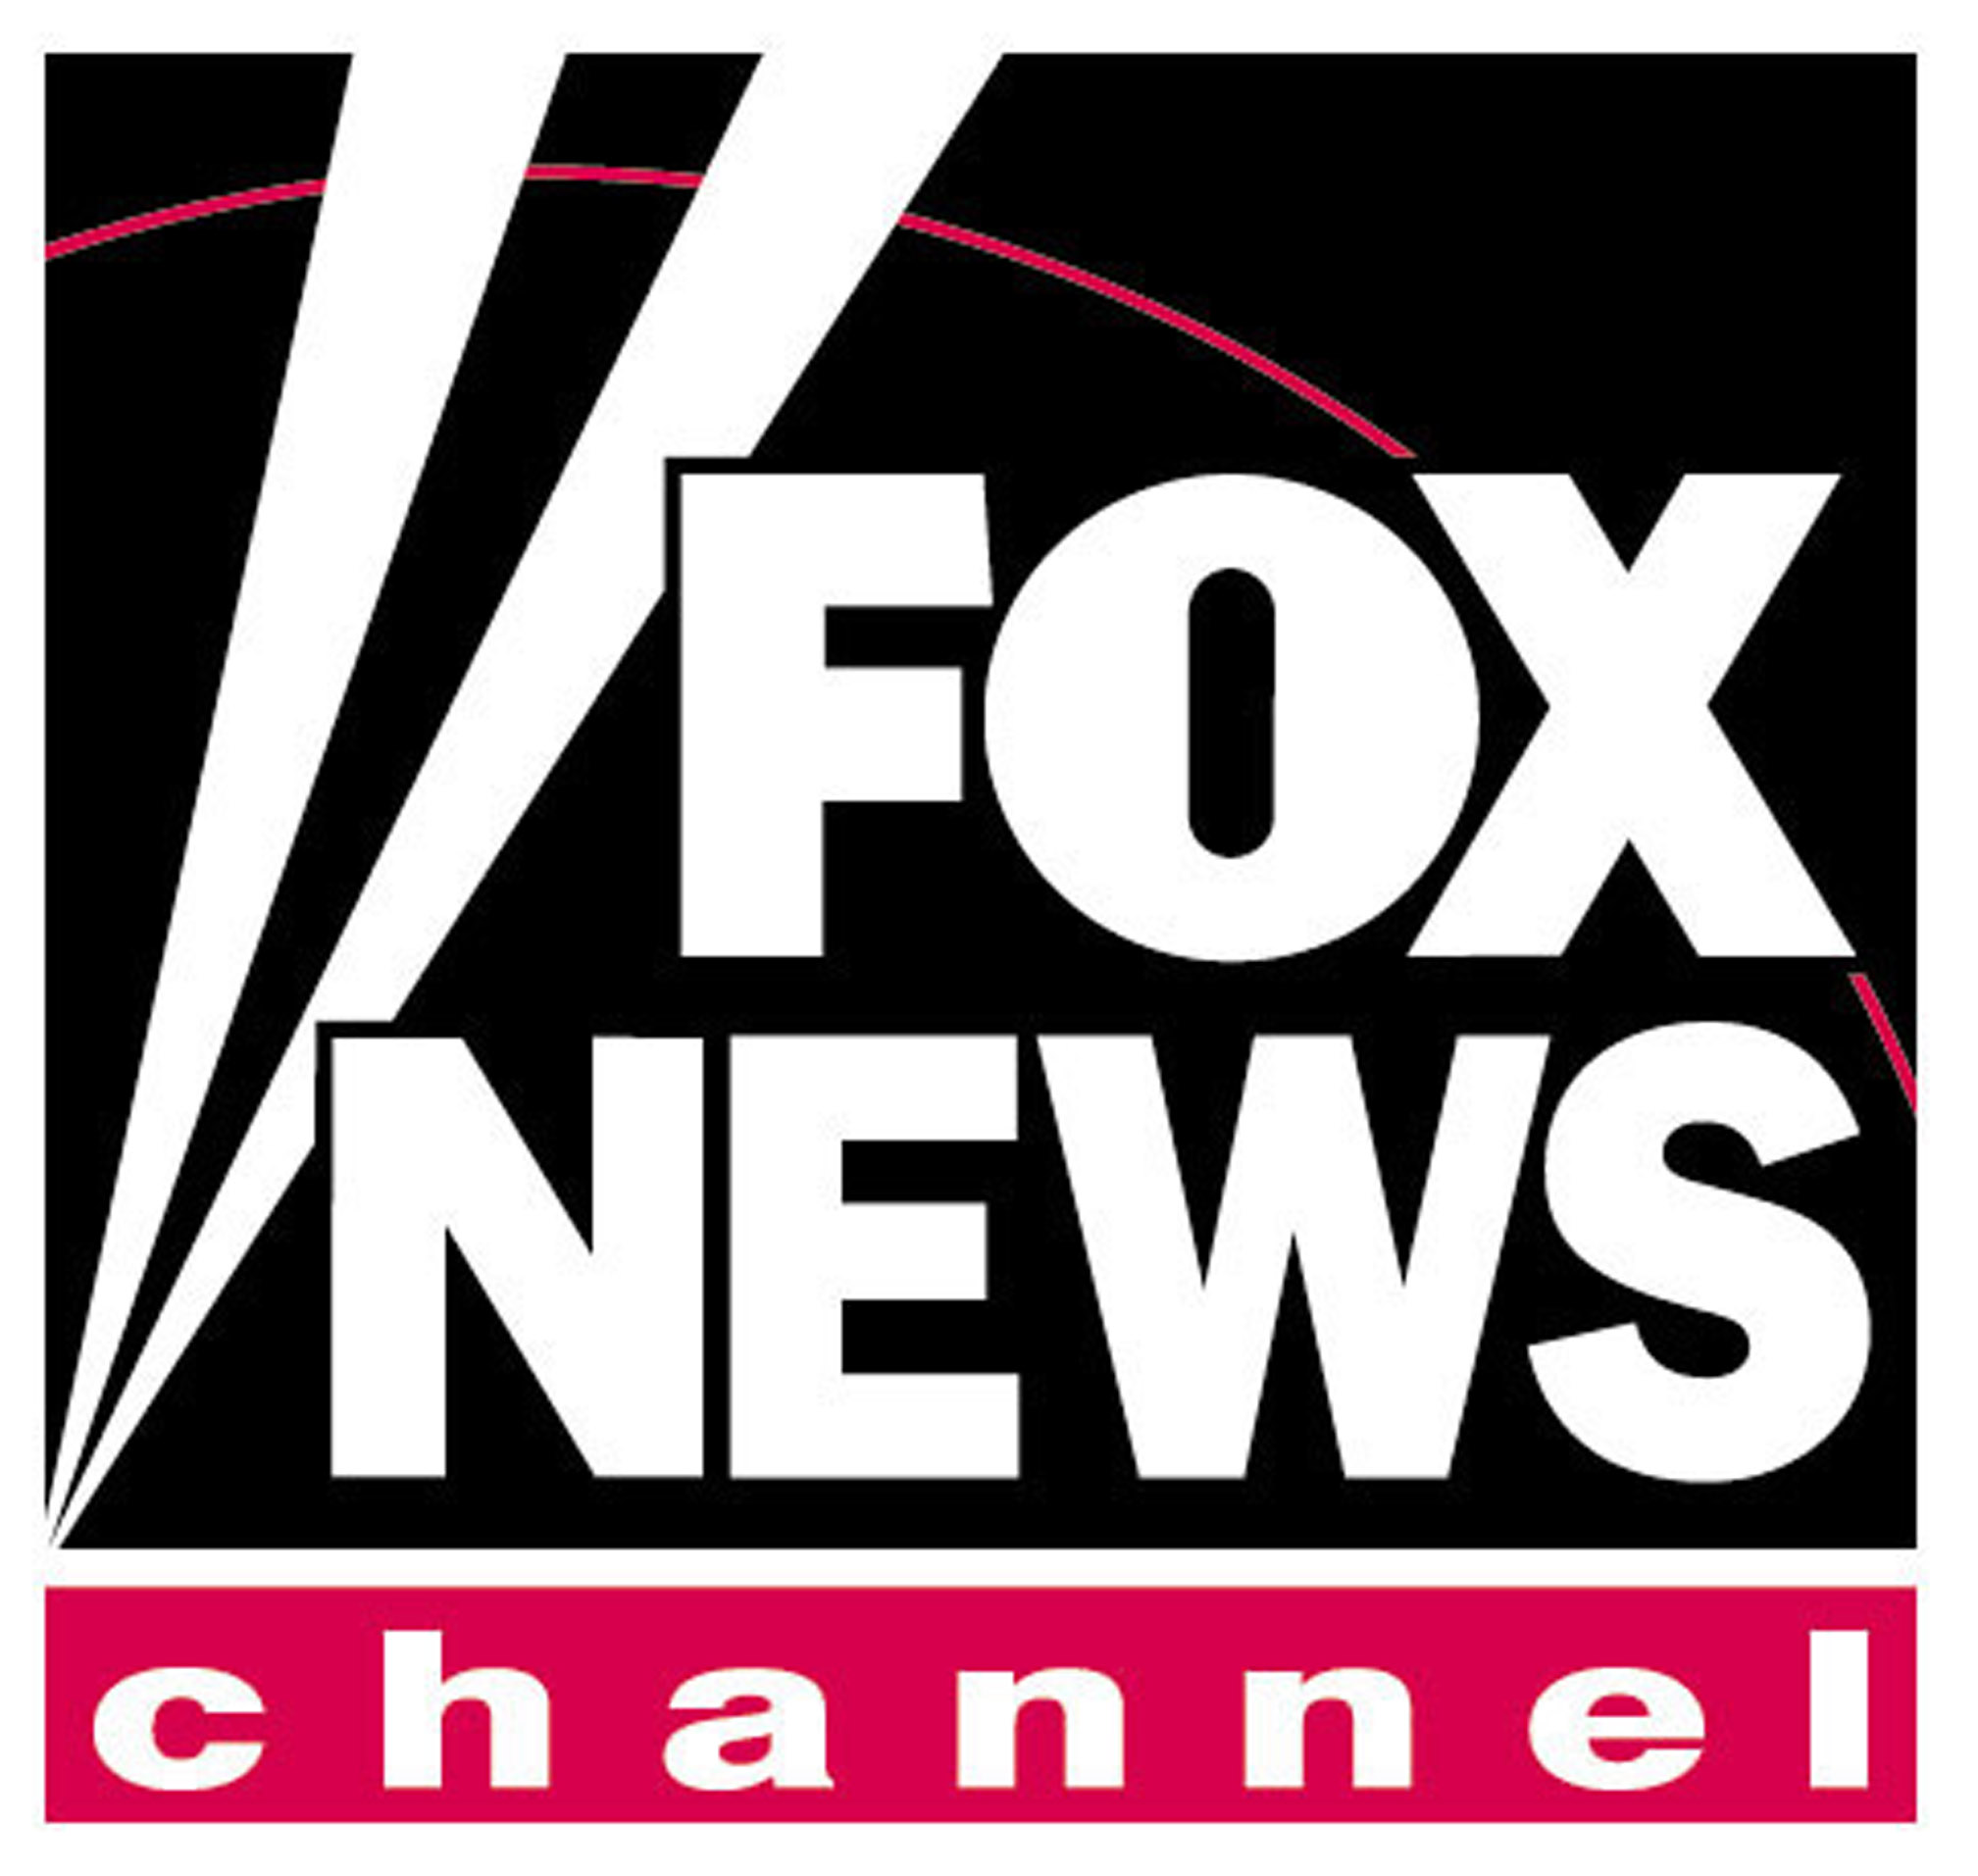 Fox news channel logo clipart picture stock After One Night of New Lineup, Fox News Boasts Dominant Ratings Win ... picture stock